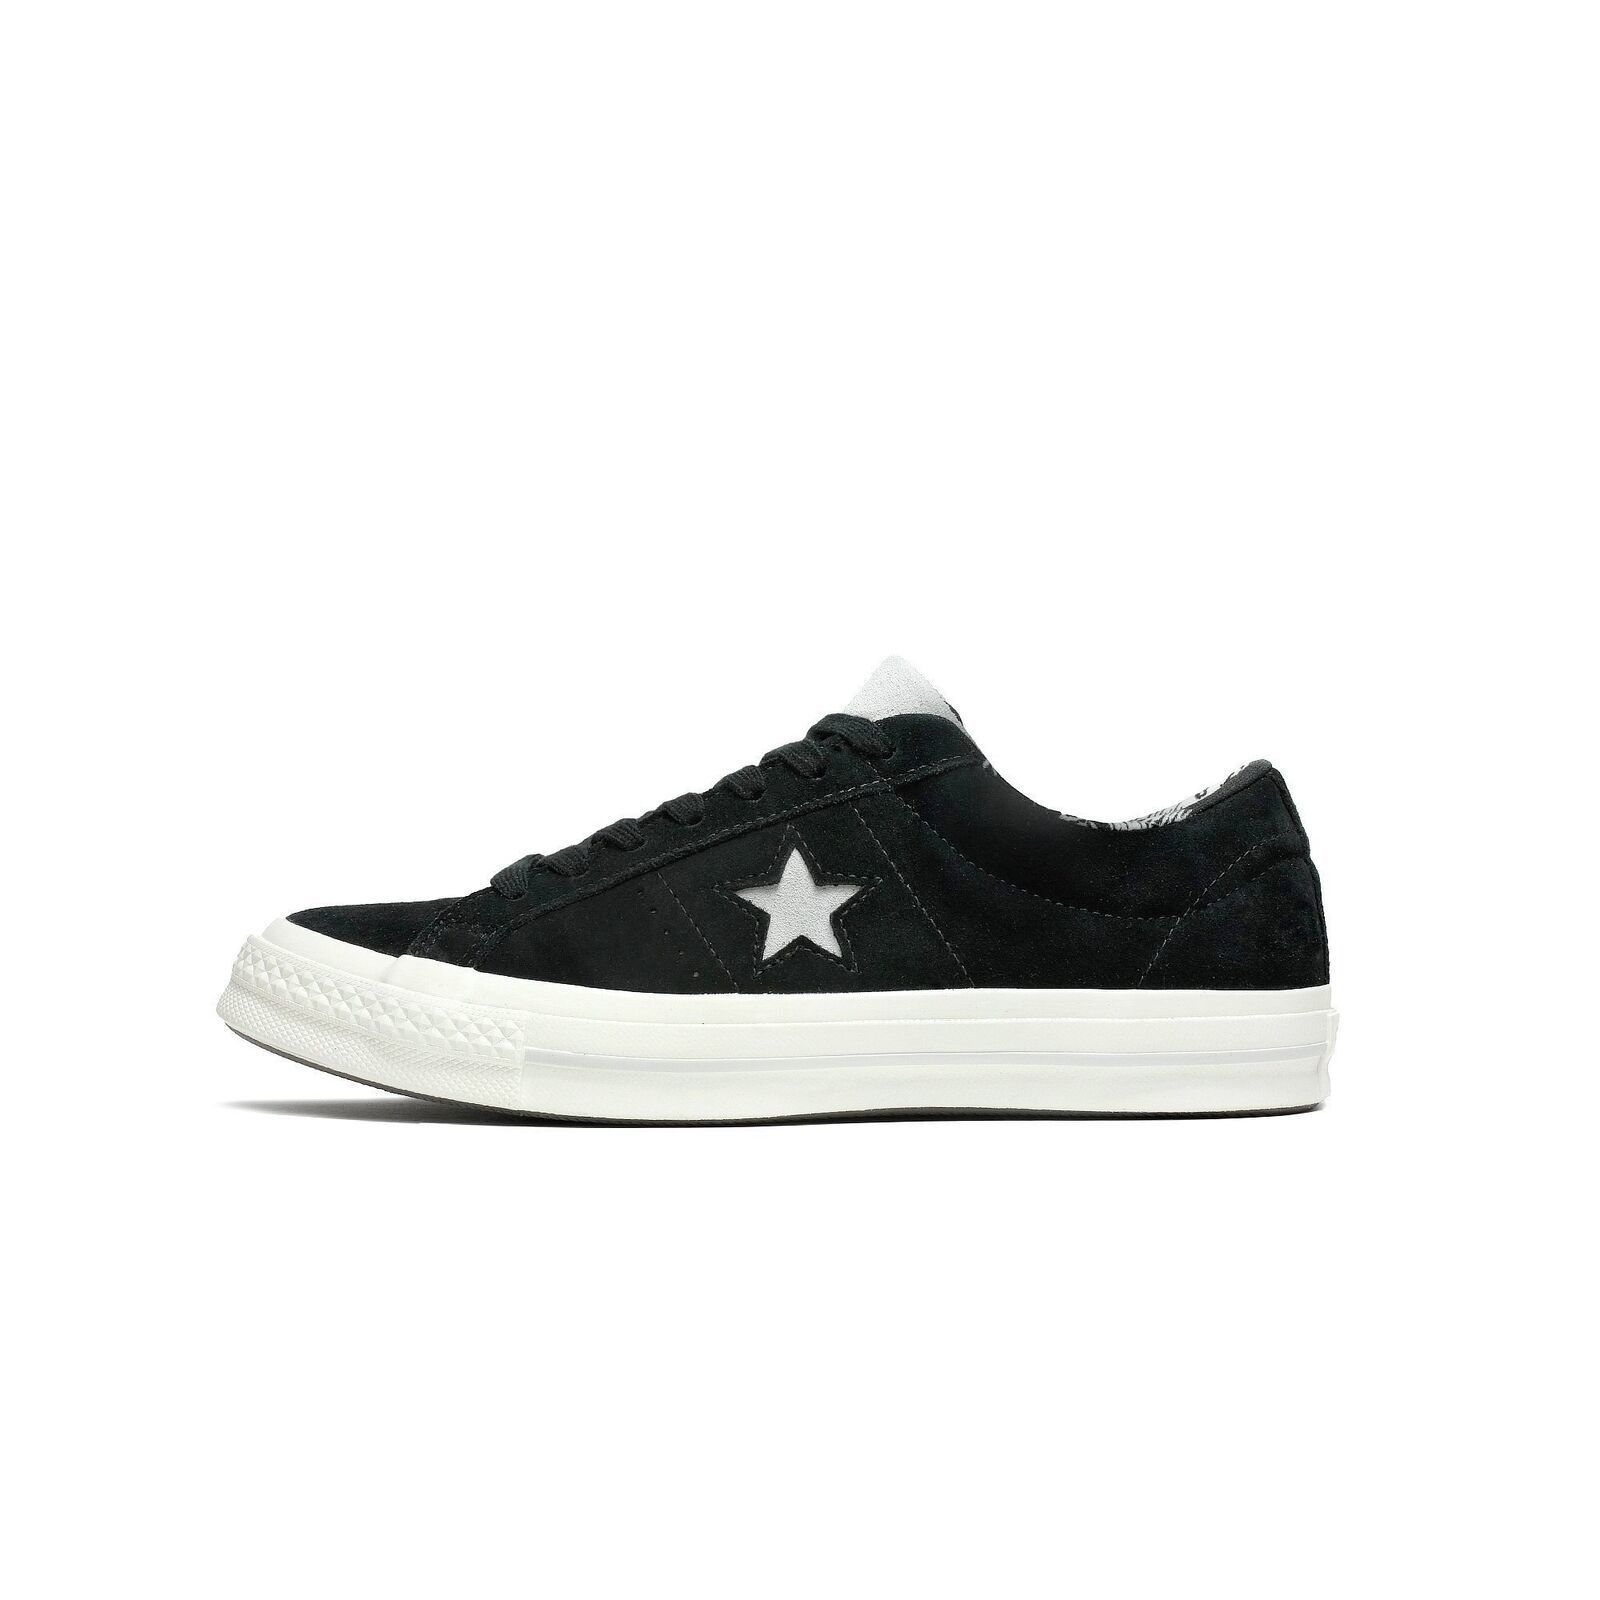 Mens Converse One Star OX Black Mouse Egret 160584C